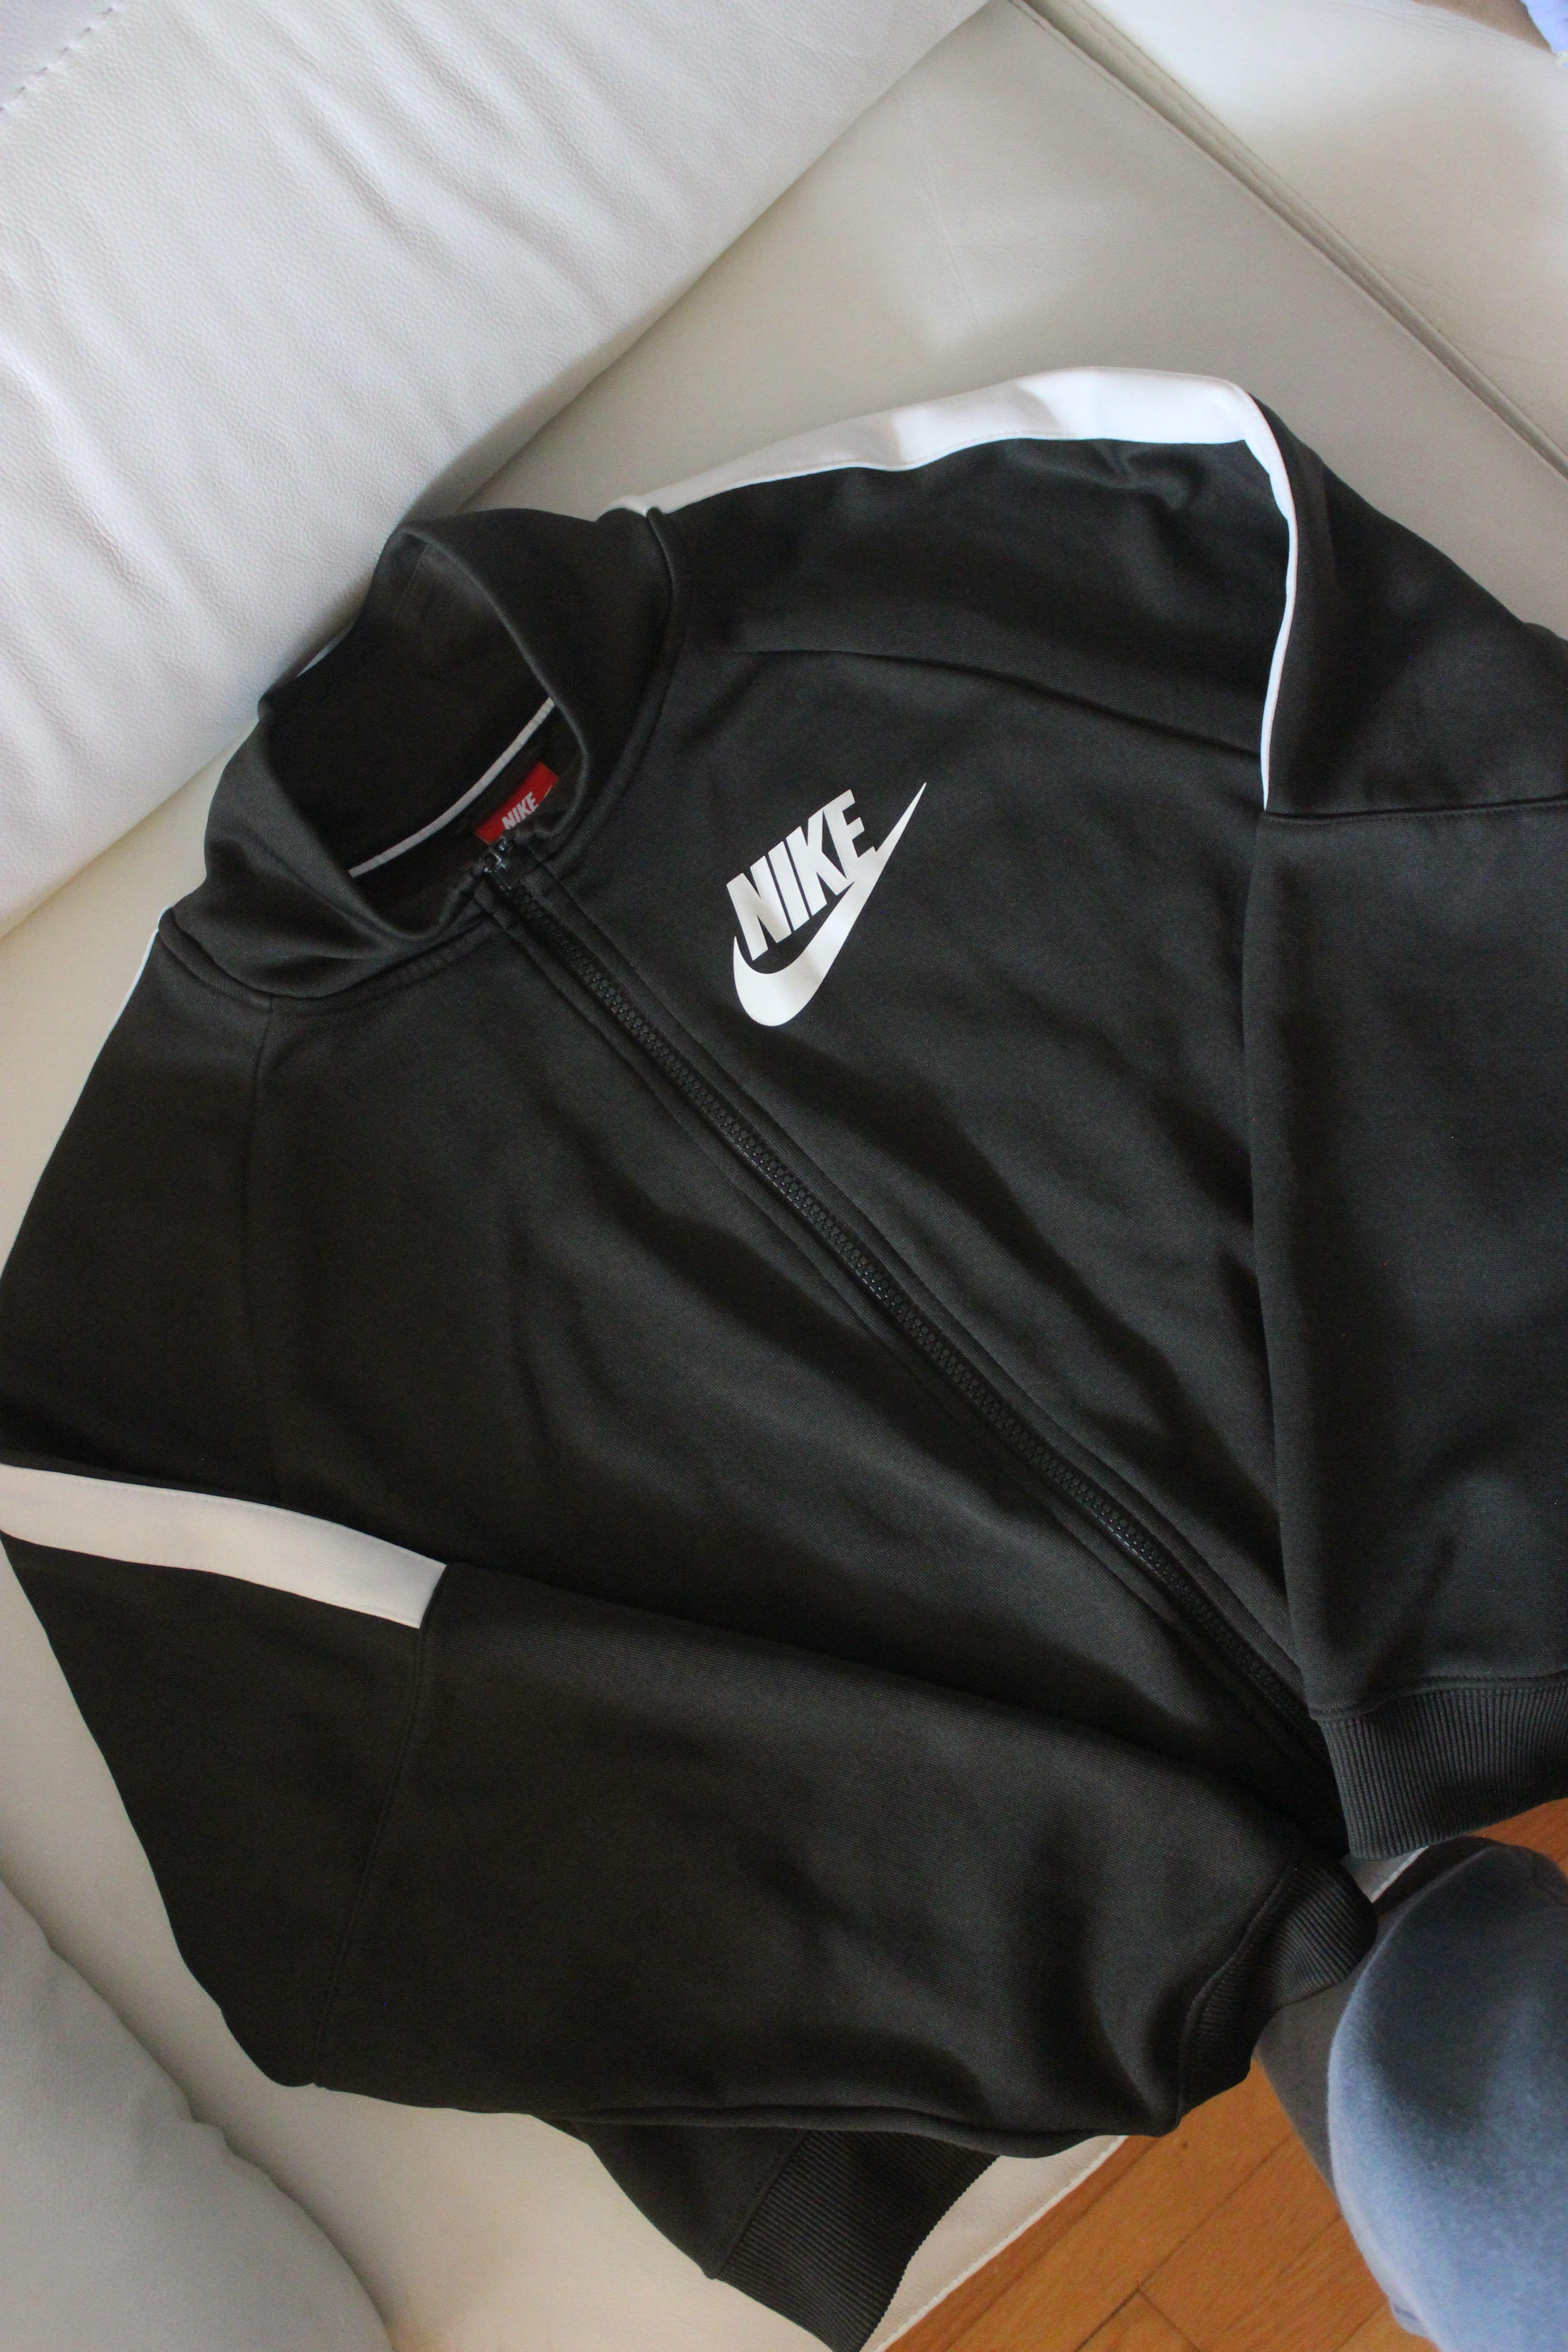 Nike cropped zip up sweater